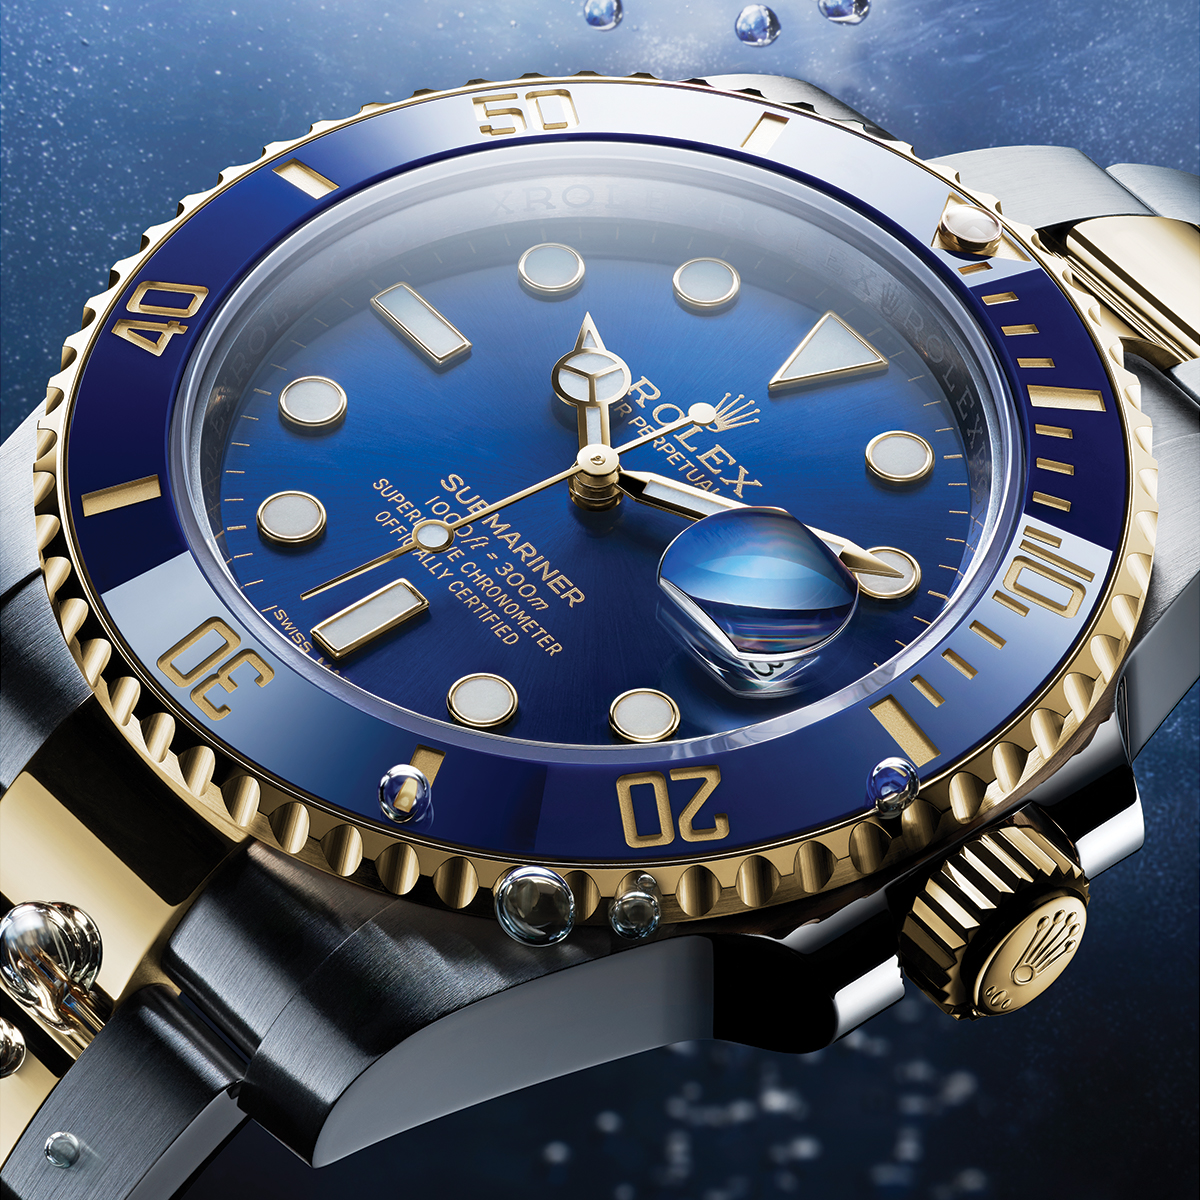 A reference among divers' watches, the Submariner Date has a rotatable bezel with a 60-minute graduated Cerachrom insert in ceramic to monitor dives time. The bracelet's length can be adjusted easily thanks to the Rolex Glidelock system. More https://t.co/AvQii0qSZO #Perpetual https://t.co/yojkwKFAE9